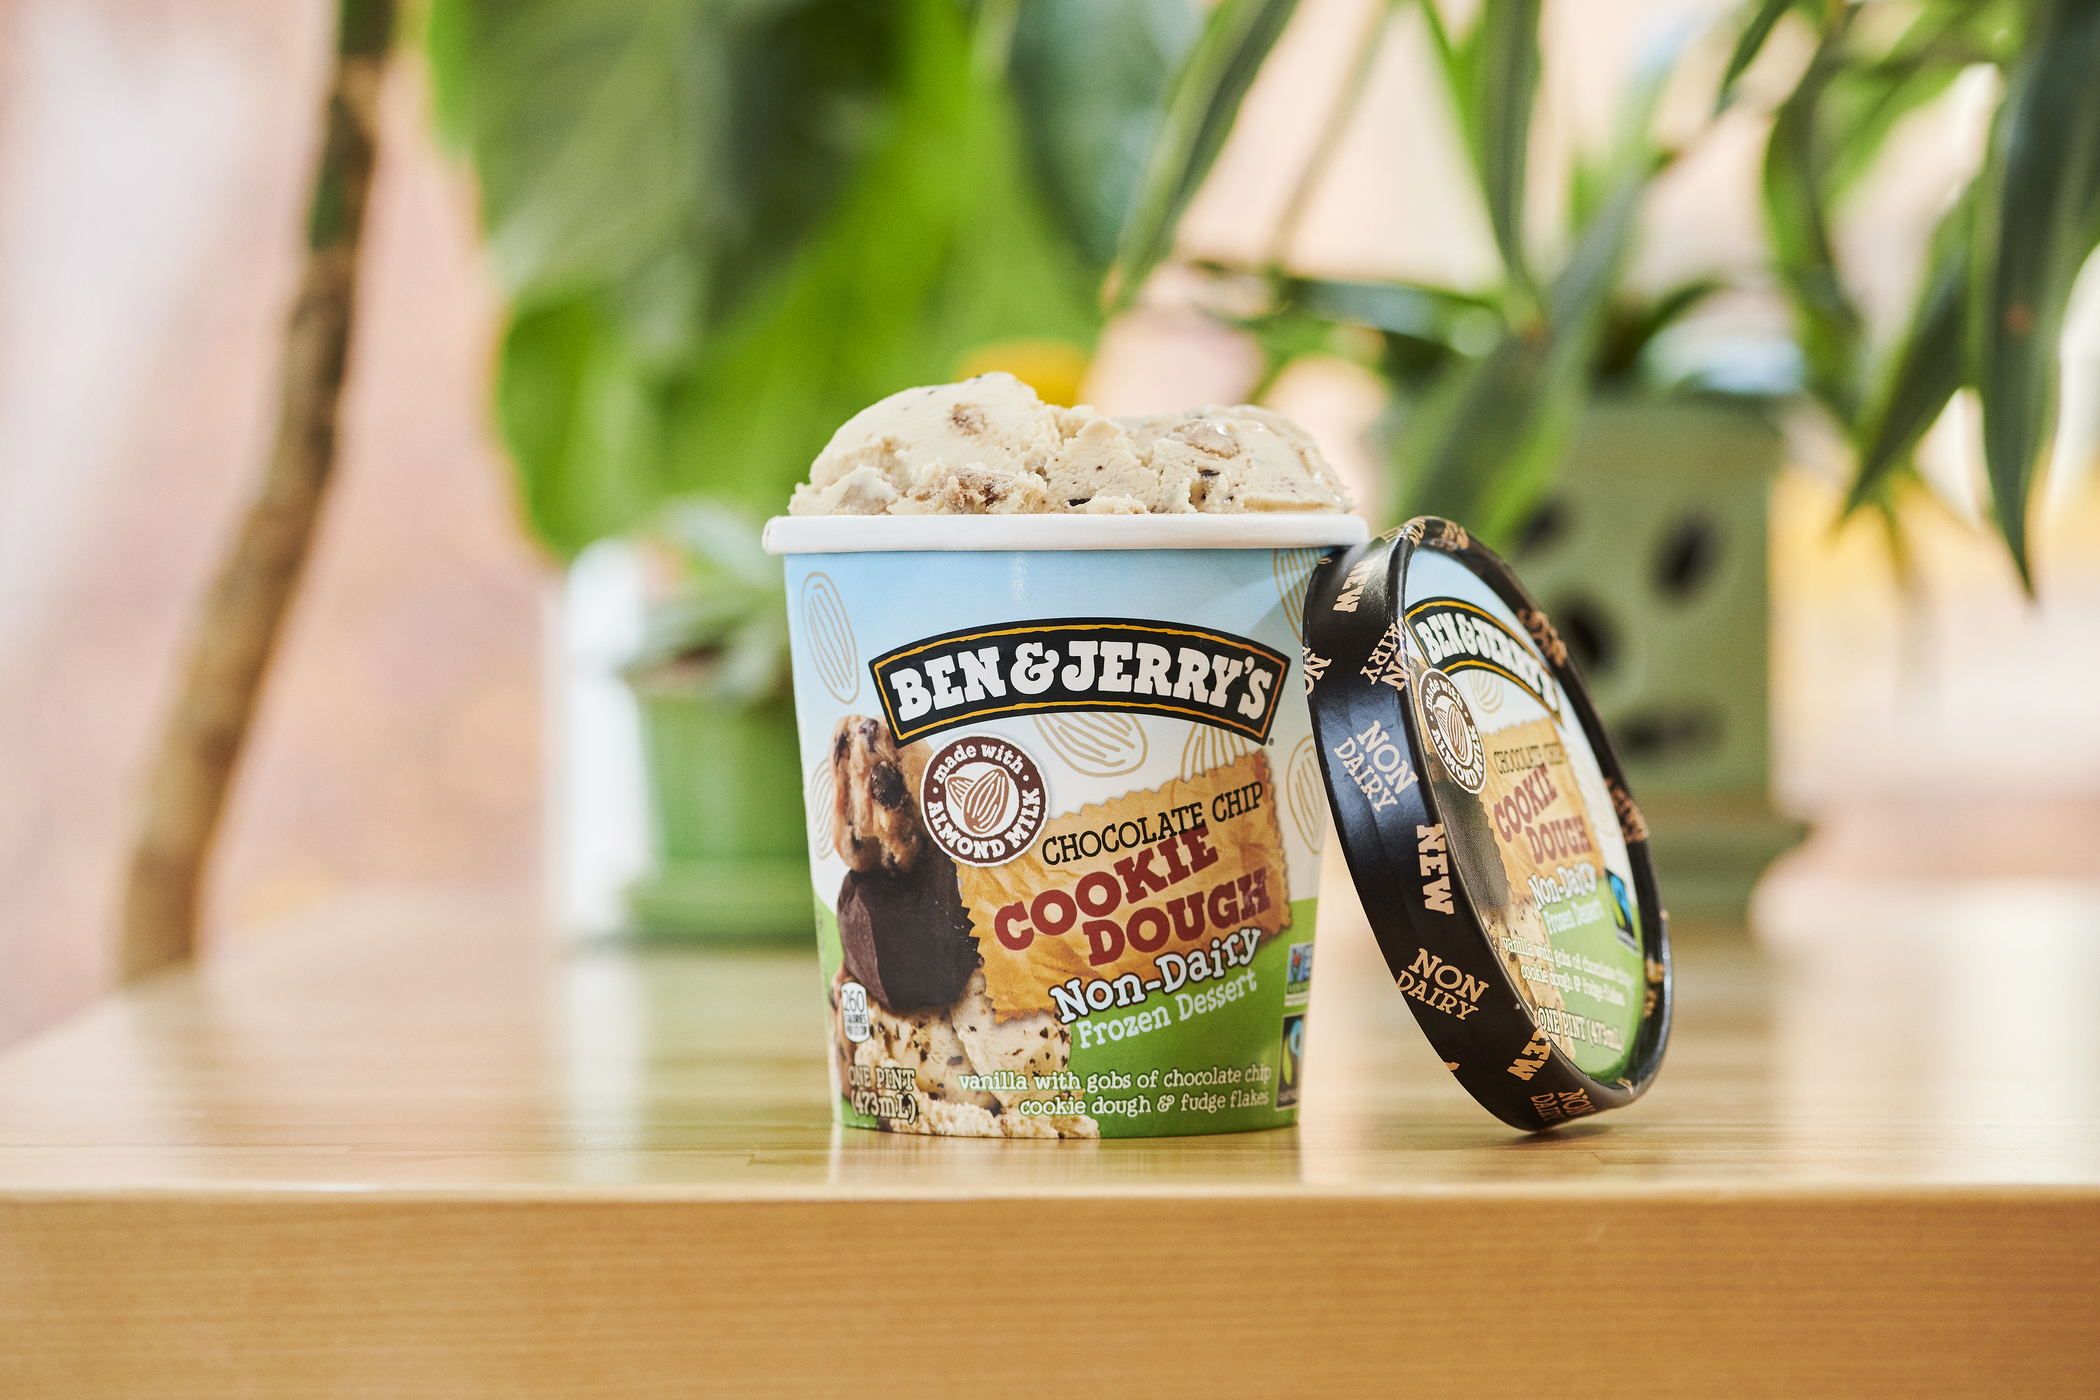 Ben & Jerry's Non-Dairy Chocolate Chip Cookie Dough is vanilla with gobs of chocolate chip cookie dough and fudge flakes. This is a vegan version of Ben & Jerry's #1 favorite fan flavor.